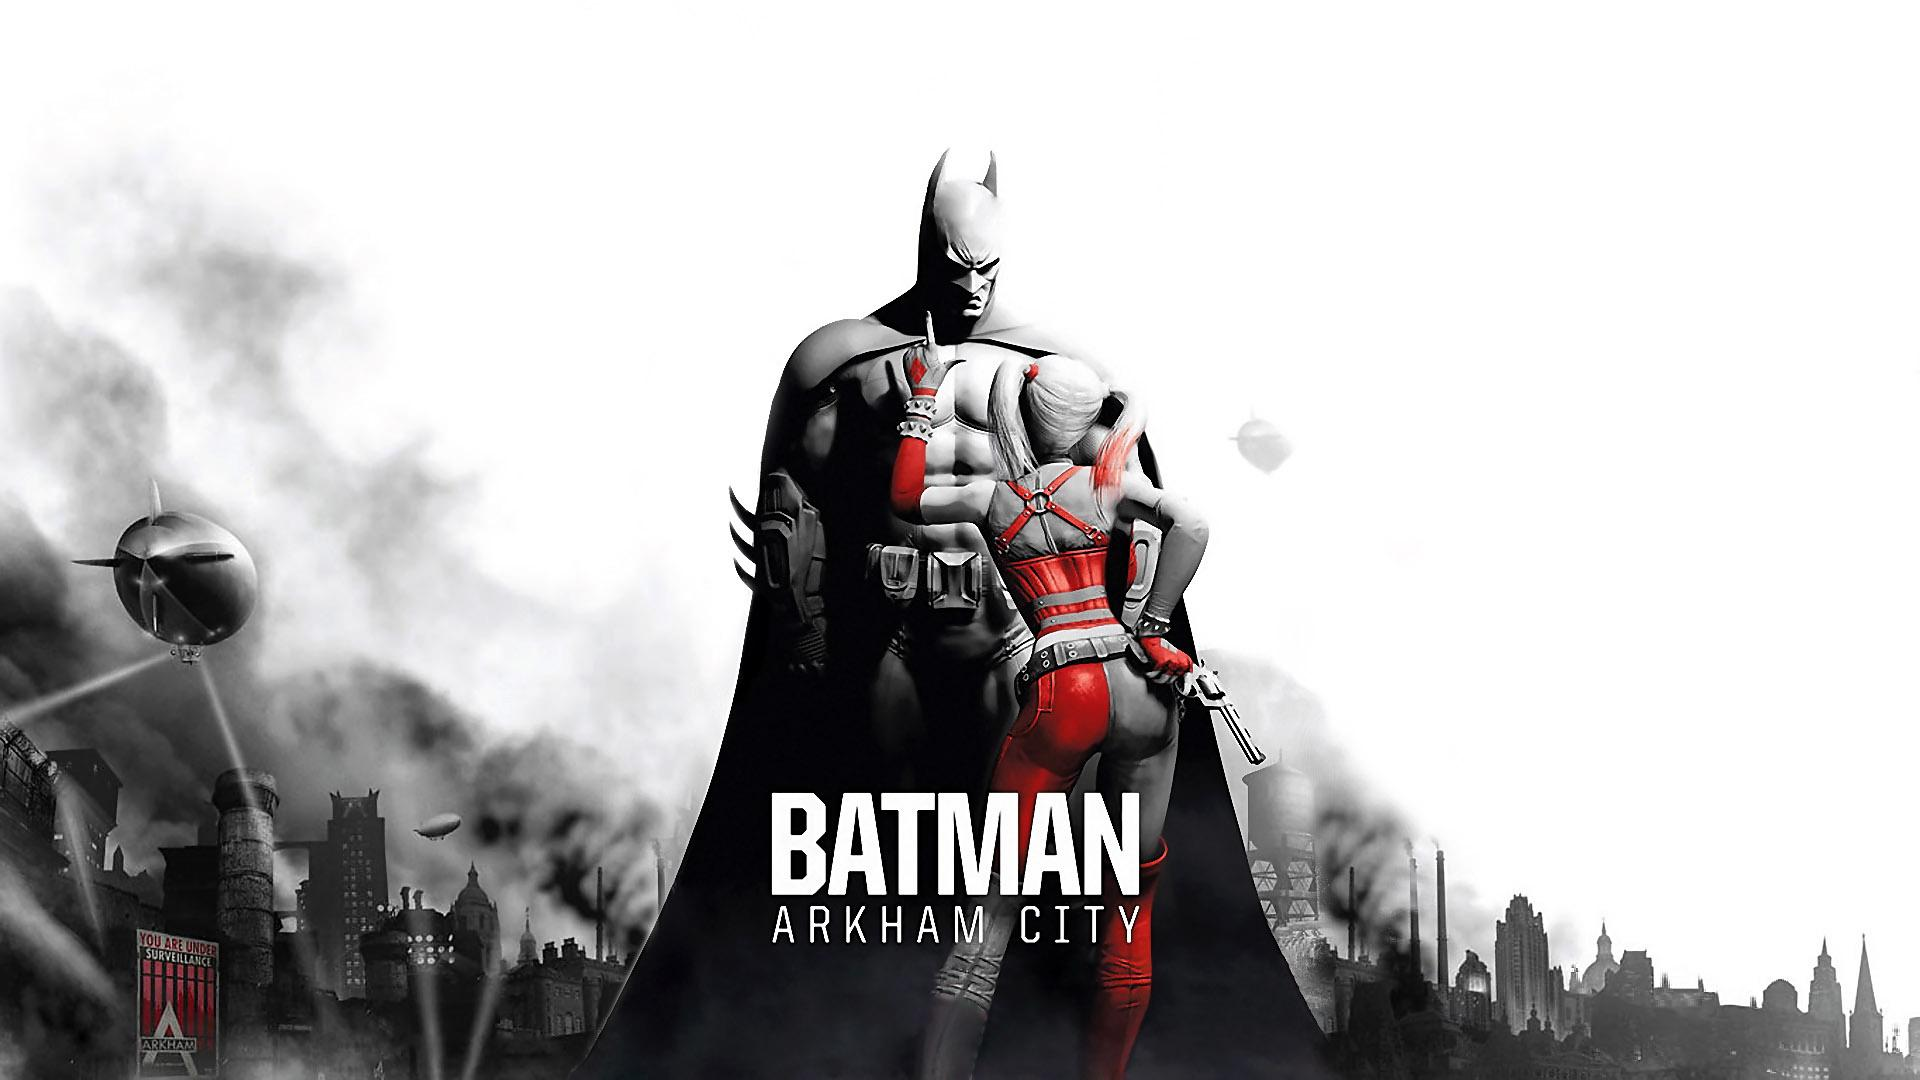 Batman-Arkham_City_Batman-Harley.jpg (1920×1080)